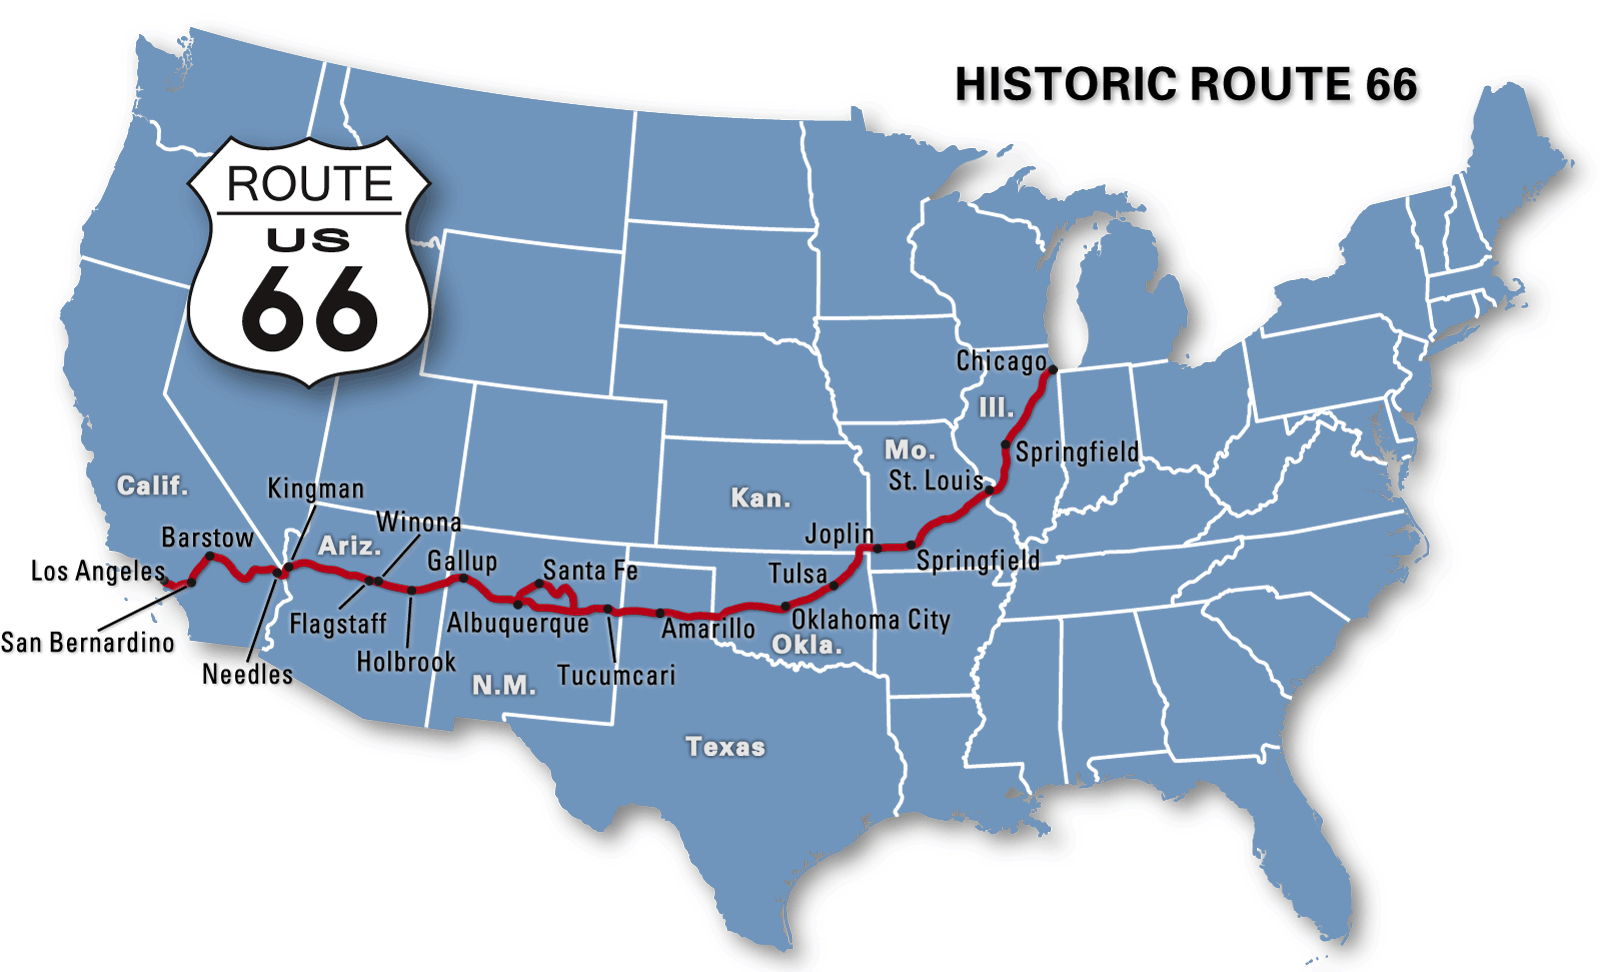 Route 66 Map | Places In My Heart | Route 66 Road Trip, Route 66 Map - Historic Route 66 California Map